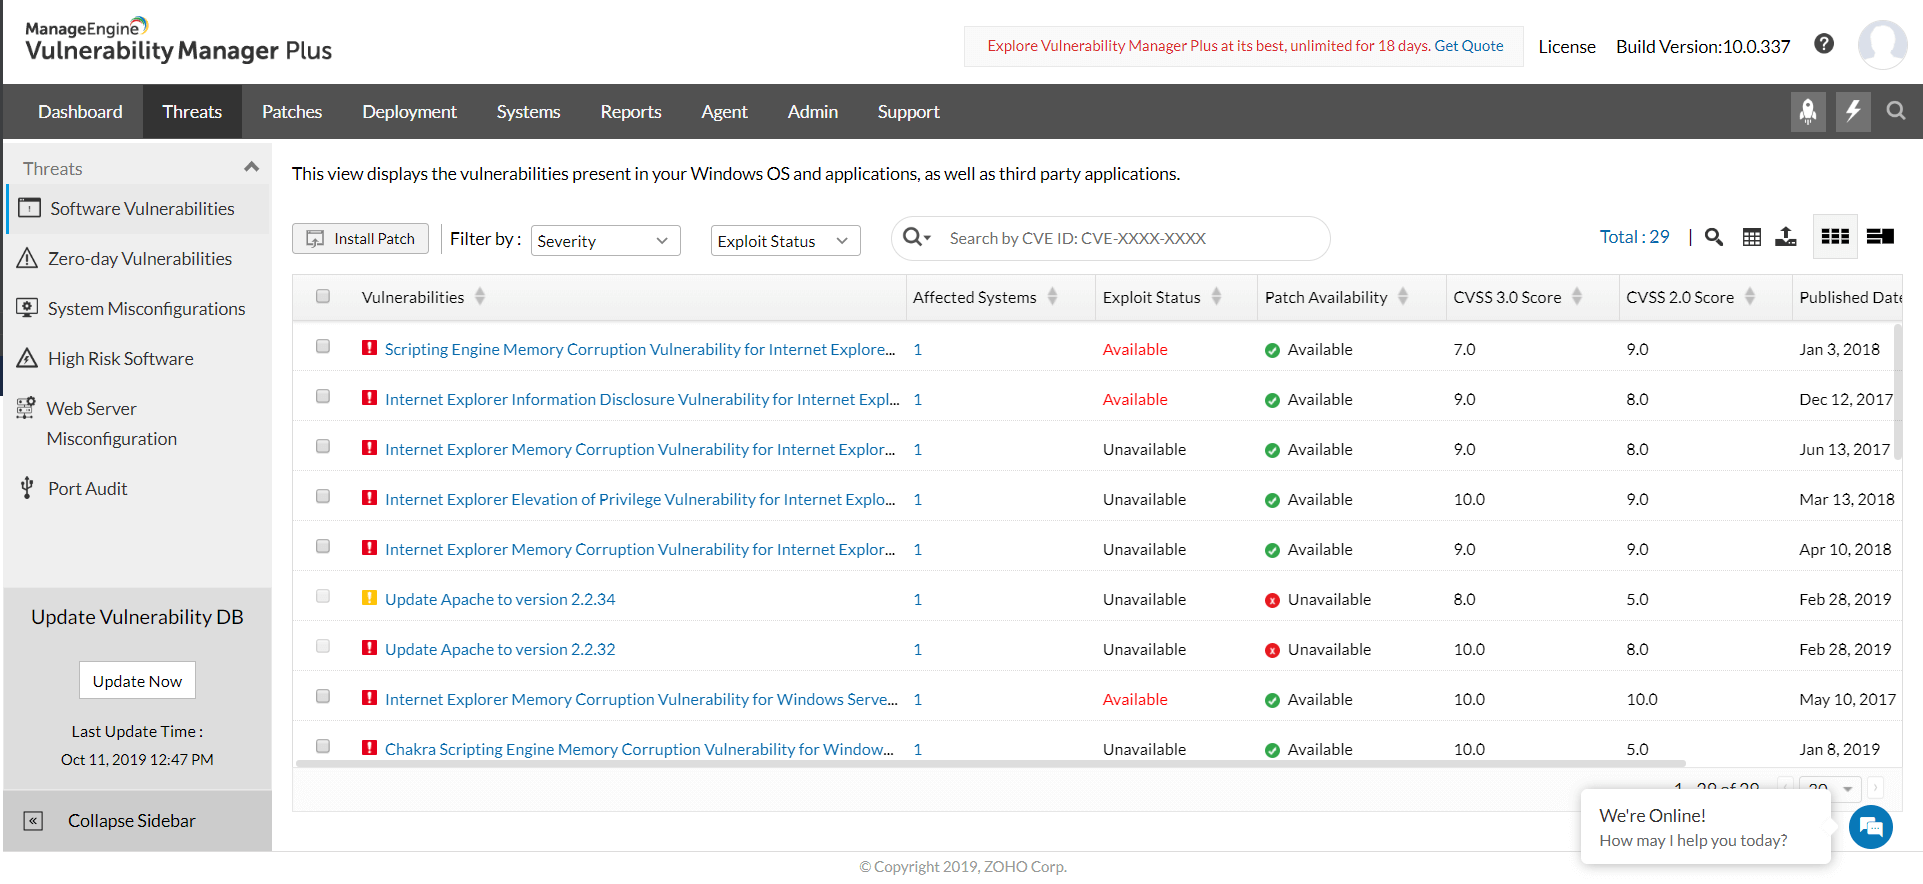 Vulnerability monitoring and assessment view - ManageEngine Vulnerability Manager Plus